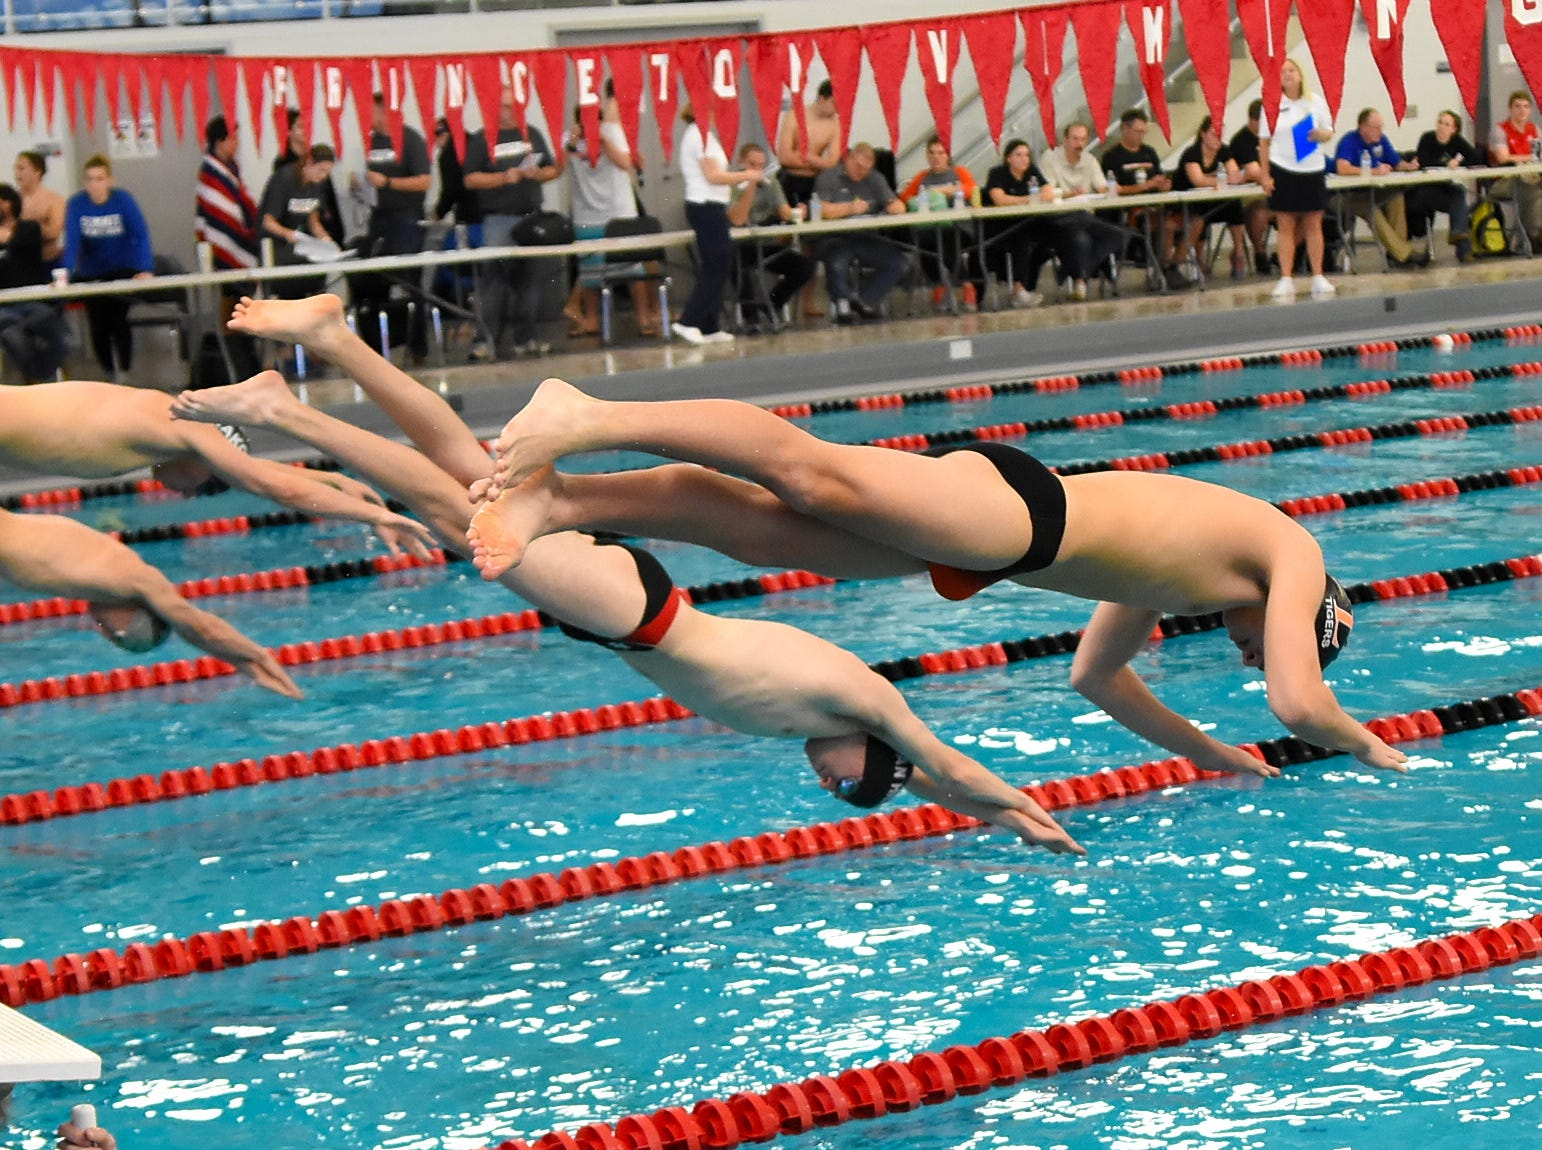 Swimmers hit the pool in the boys 50 freestyle at the Southwest Ohio Swimming and Diving Classic, January 19, 2019.